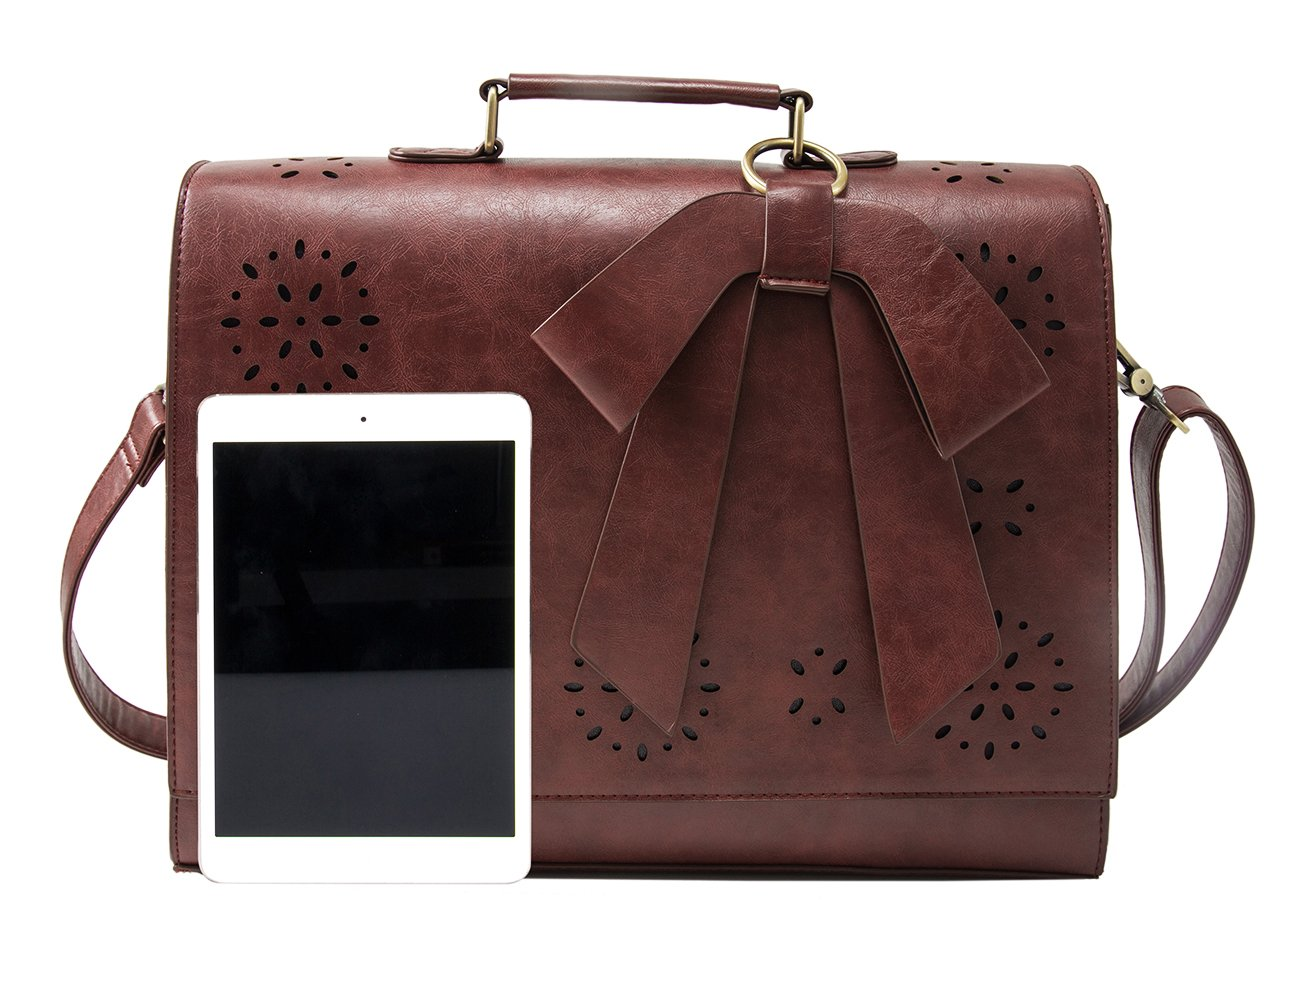 ECOSUSI Ladies PU Leather Laptop Bag Briefcase Crossbody Messenger Bags Satchel Purse Fit 14'' Laptop, Brown by ECOSUSI (Image #8)